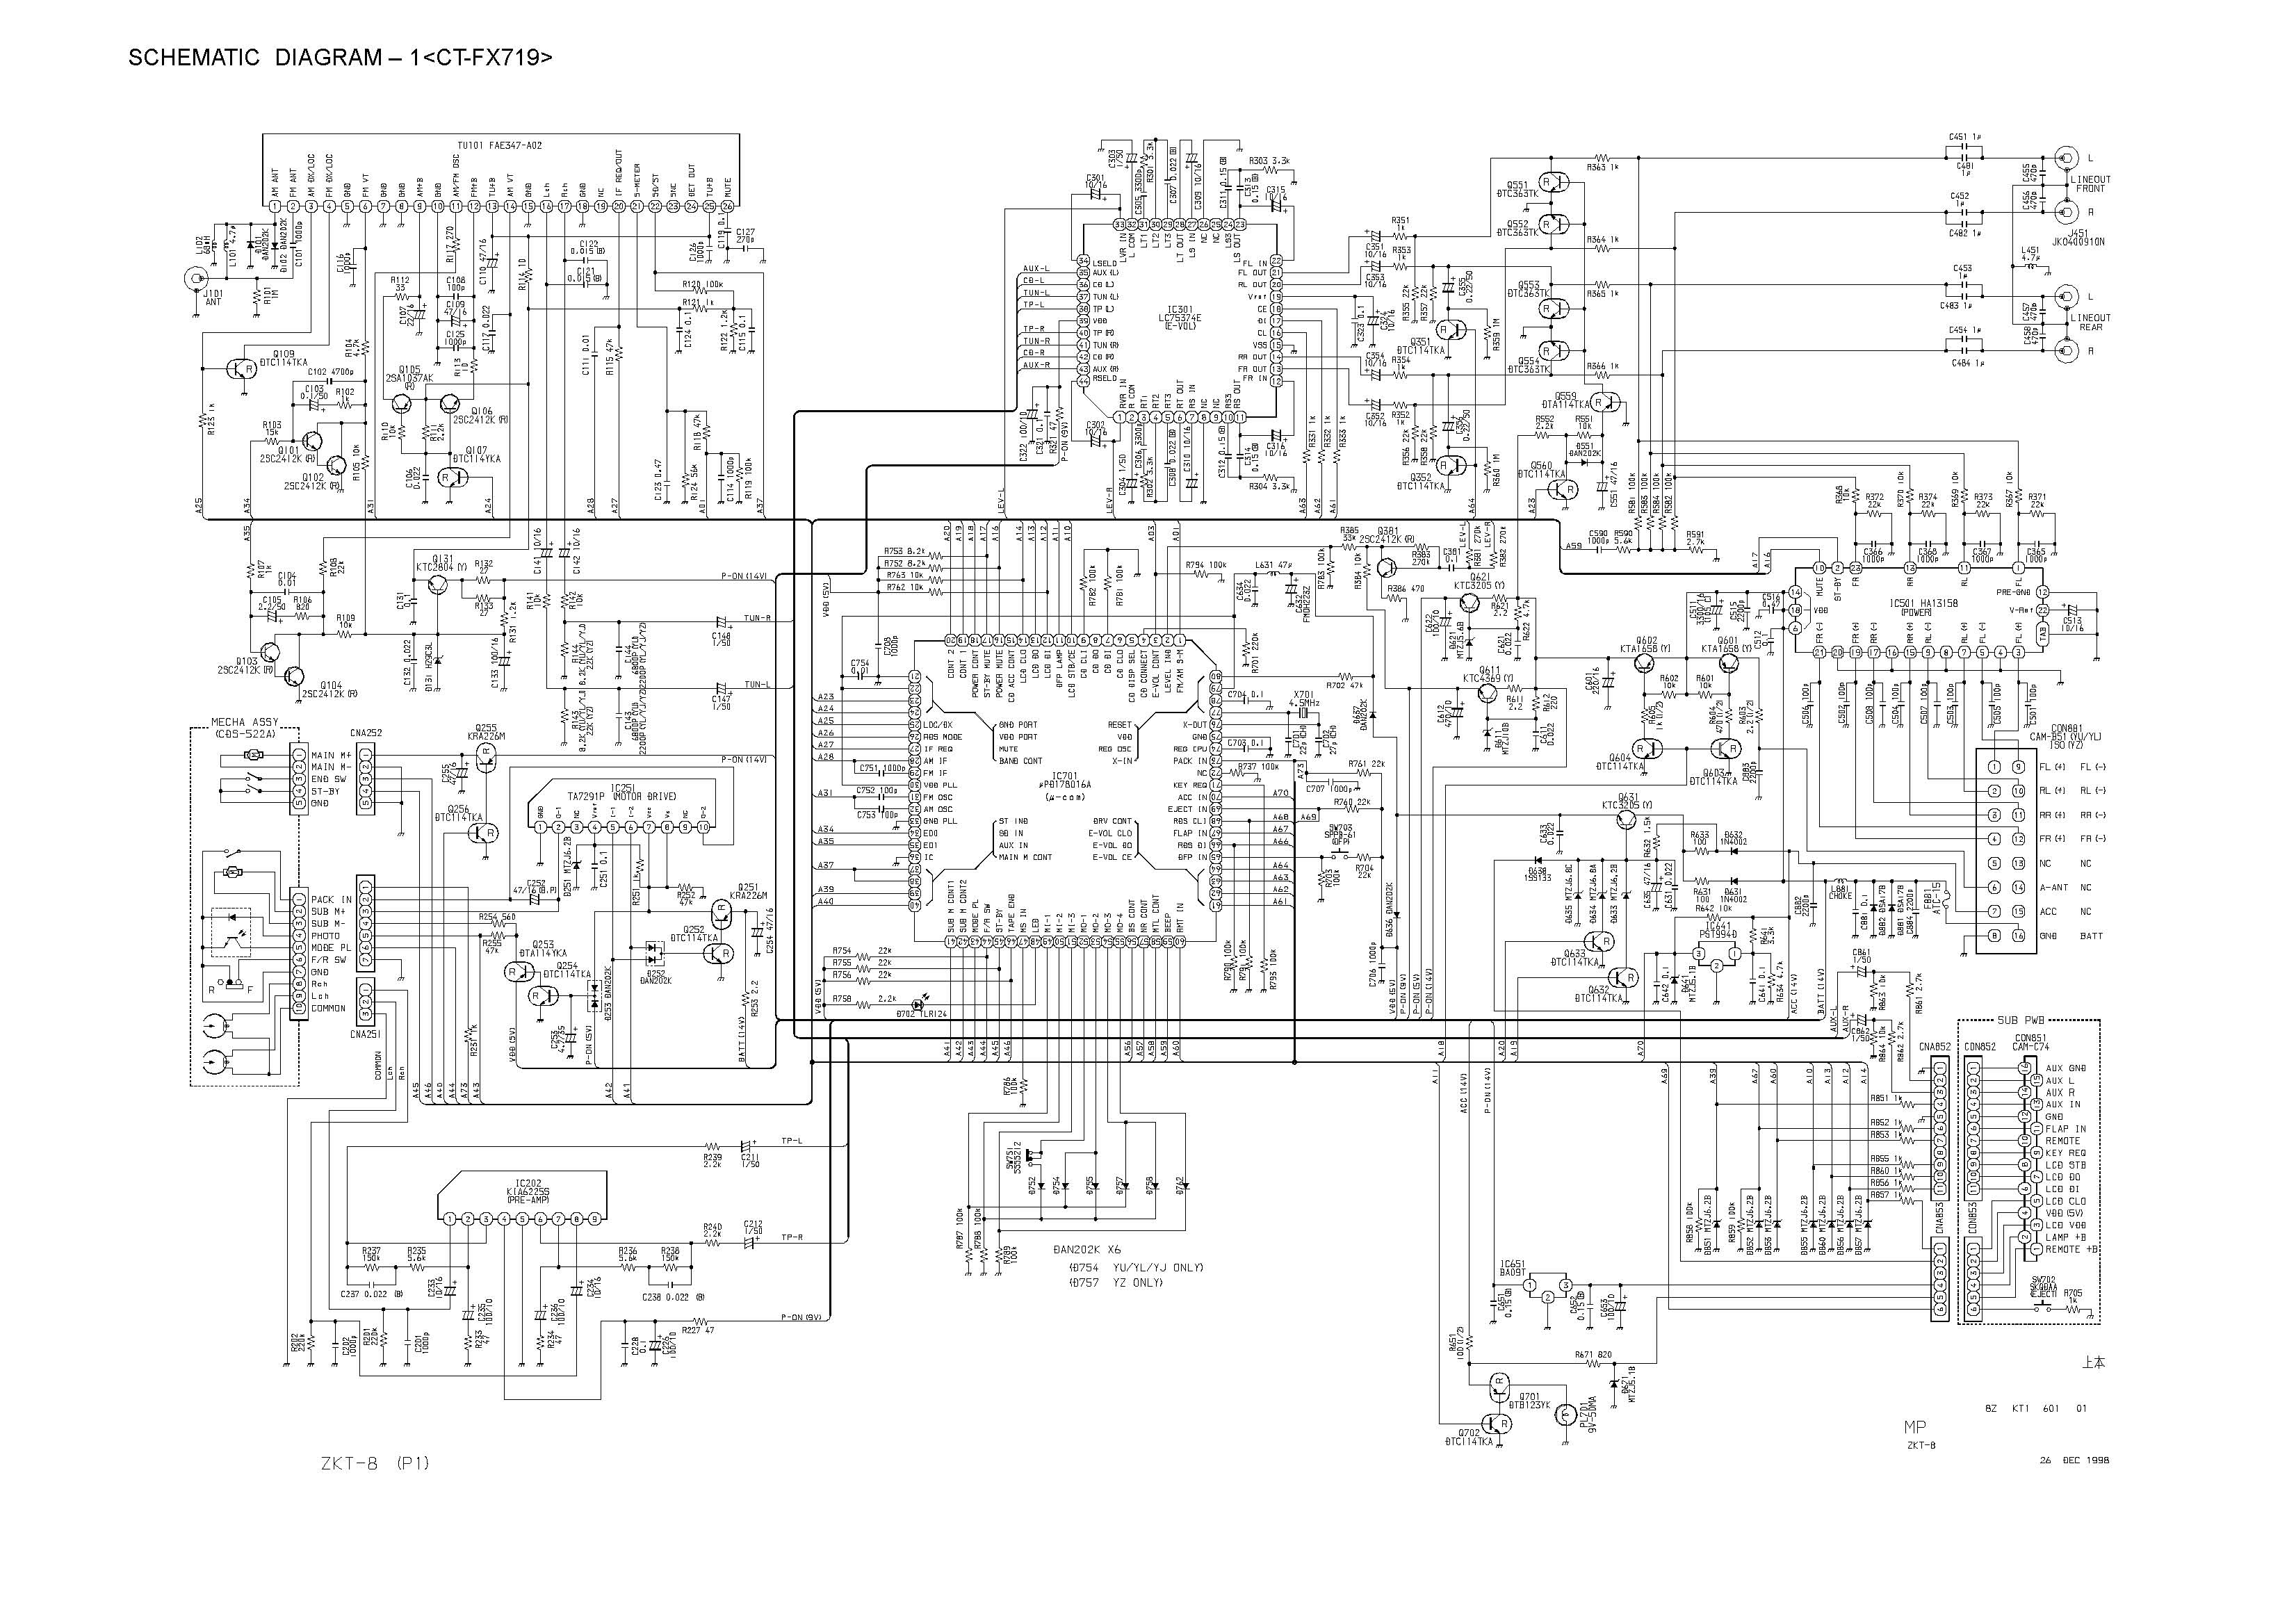 Aiwa Tv Circuit Diagram Wiring And Hub Color Television Se141 Type K Eg Schematic Ct Fx719 Main Front In Pdf Format E Rh Servicemanuals Com Block Am Radio